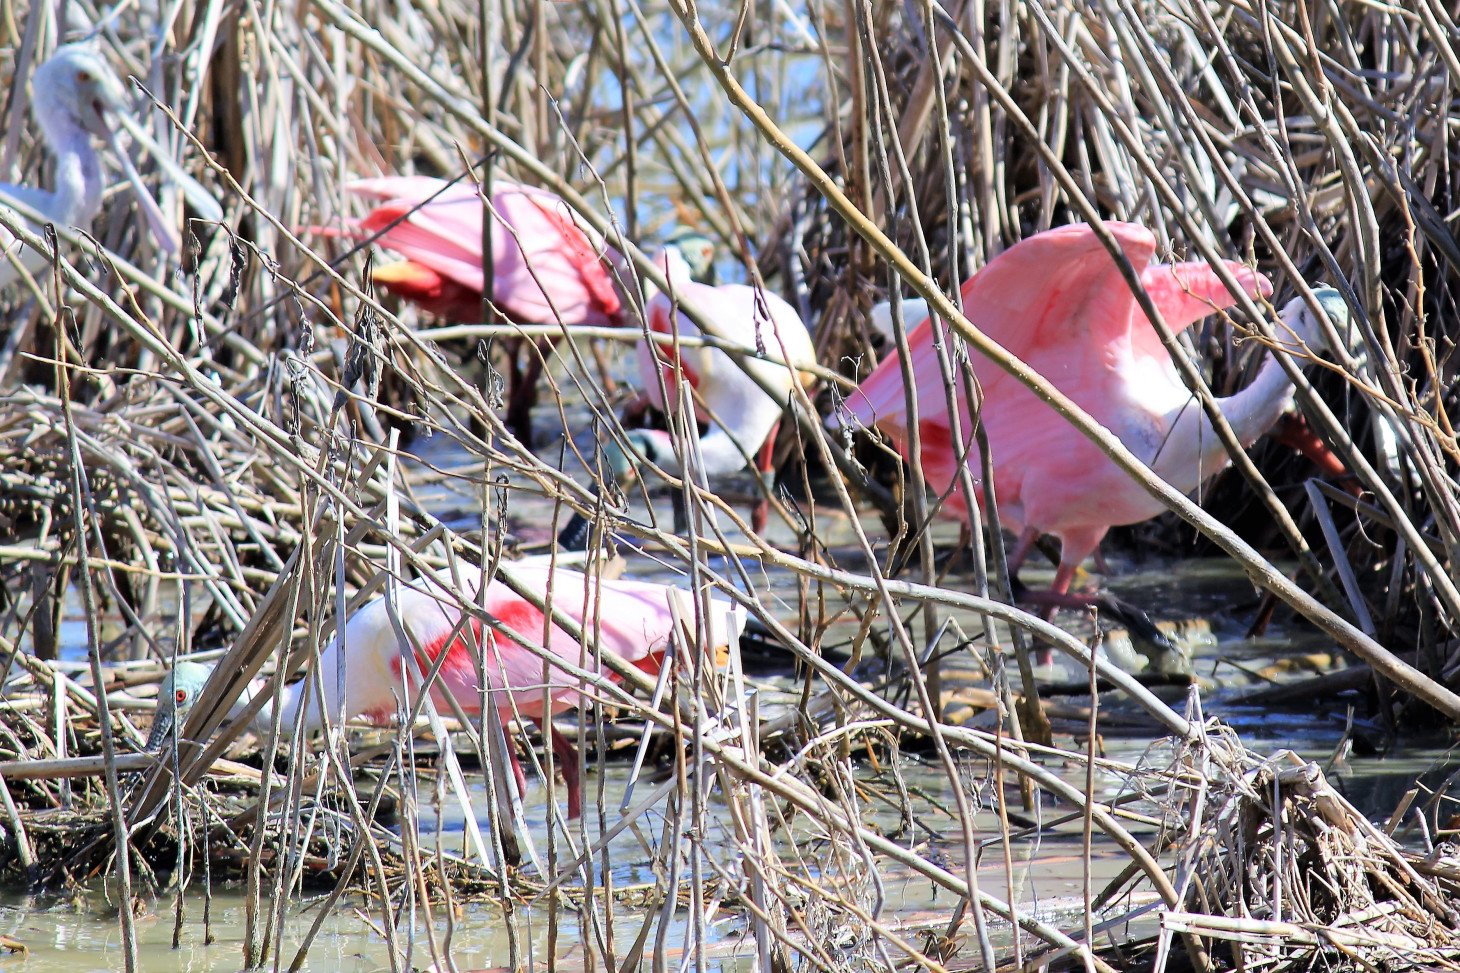 ROSEATE SPOONBILLS FEAST IN THE SLOWLY MOVING WATER.  THIS PARTICULAR GROUP HAD JUST RETURNED FROM A VERY COMPETITIVE GAME OF SHUFFLEBOARD.